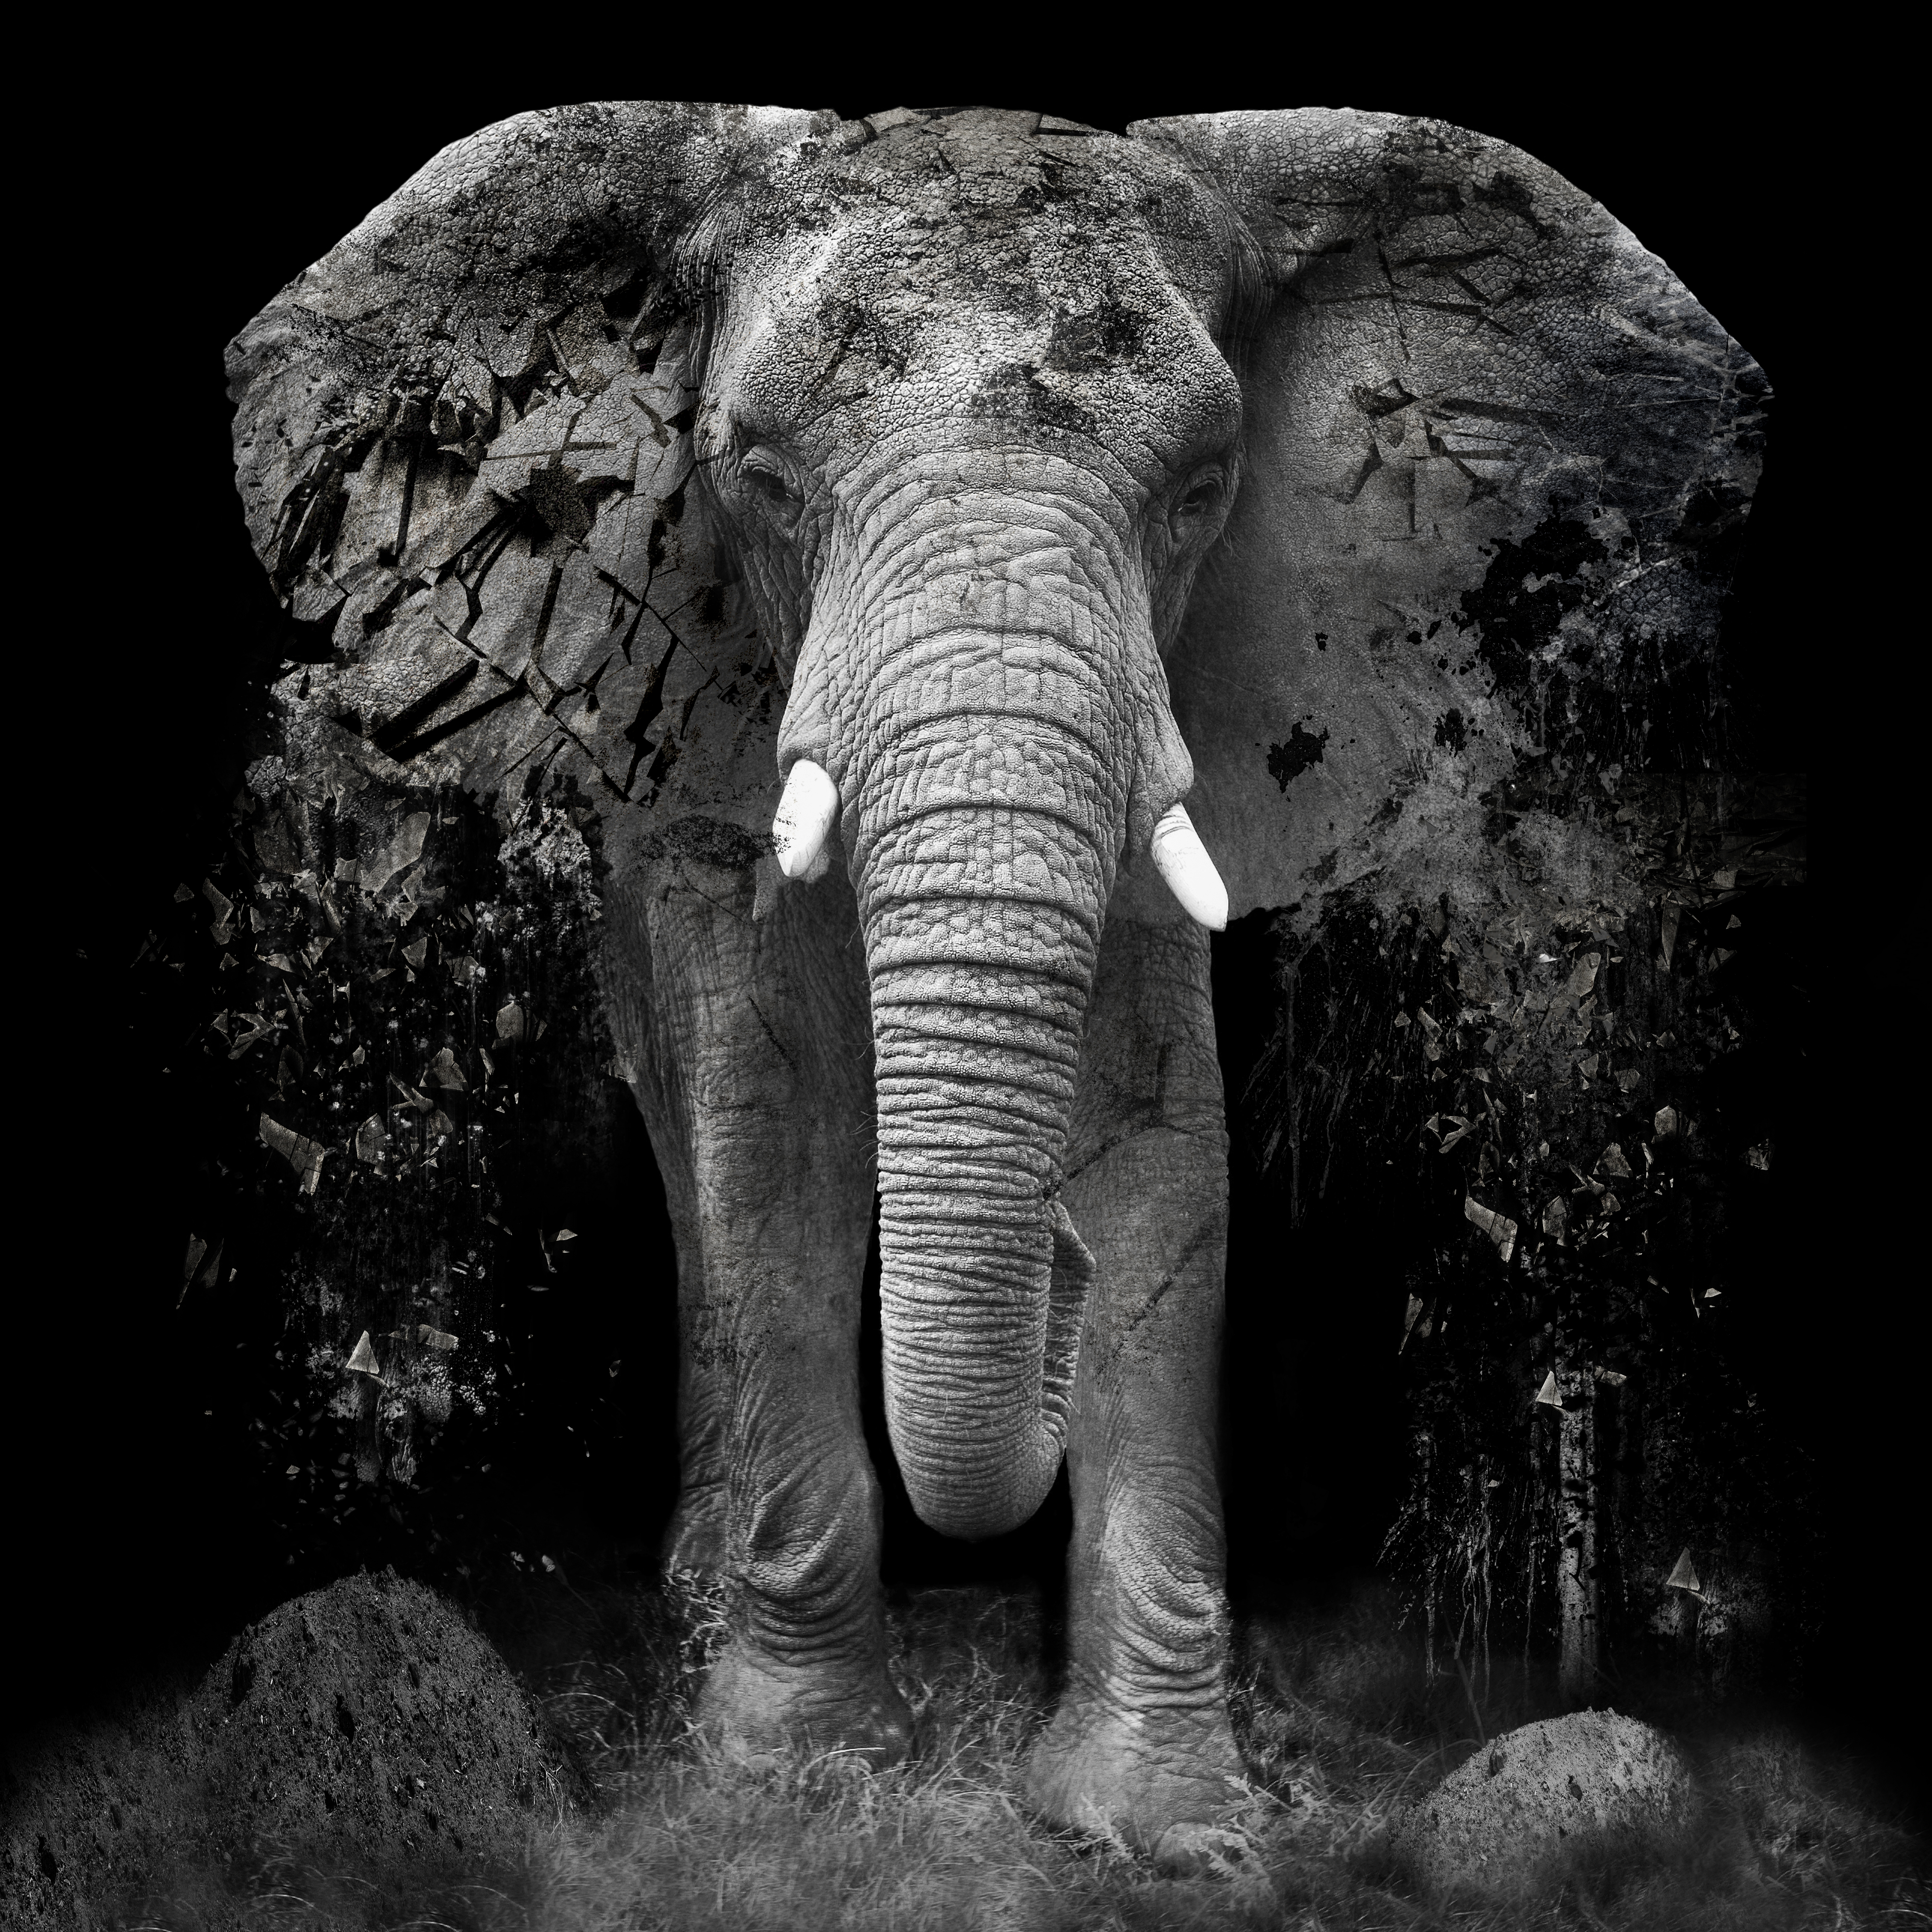 Erik Brede Artwork The Disappearance, 2014 Black and White Photograph, Conceptual